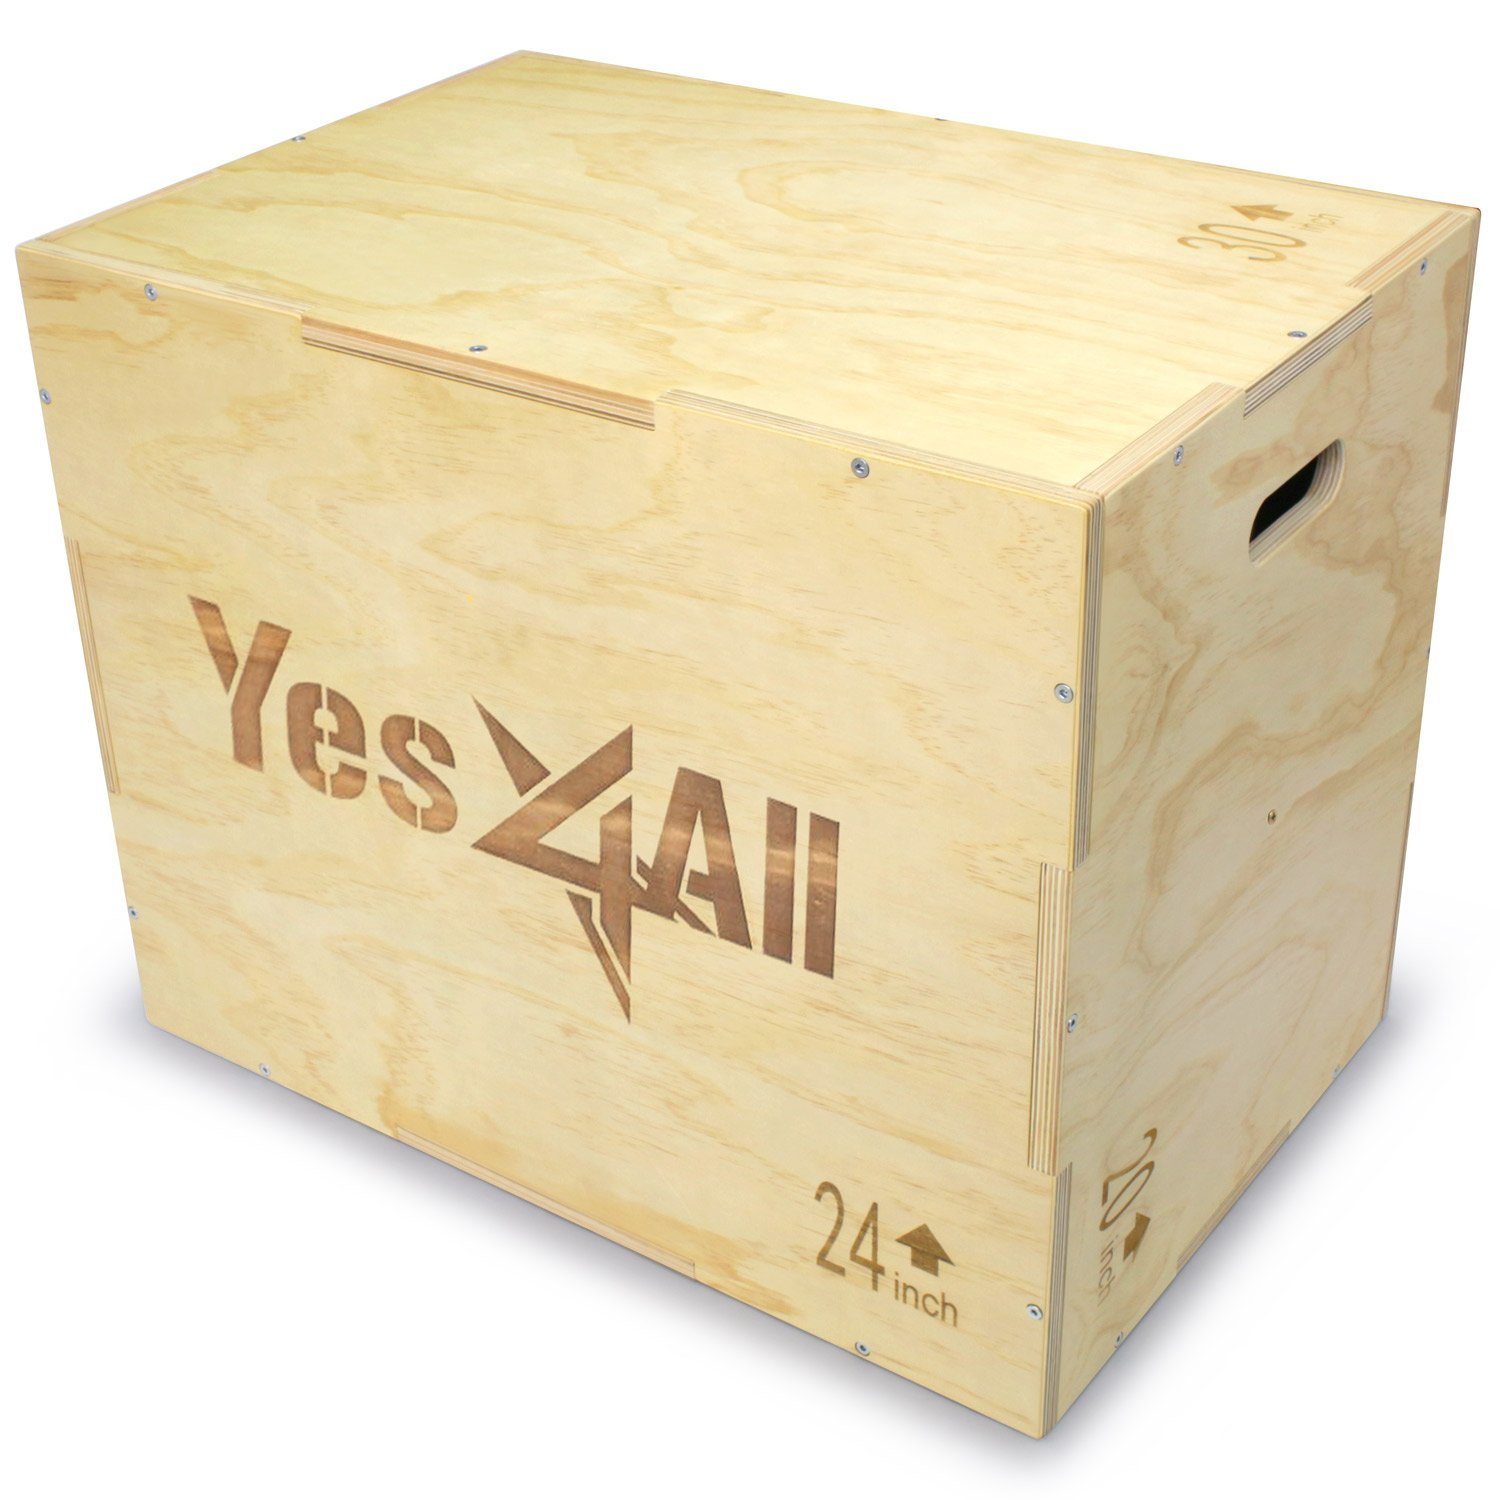 Yes4All Wood Plyo Box/Wooden Plyo Box for Exercise, Crossfit Training, MMA, Plyometric Agility - 3 in 1 Plyo Box/Plyo Jump Box (30/24/20) by Yes4All